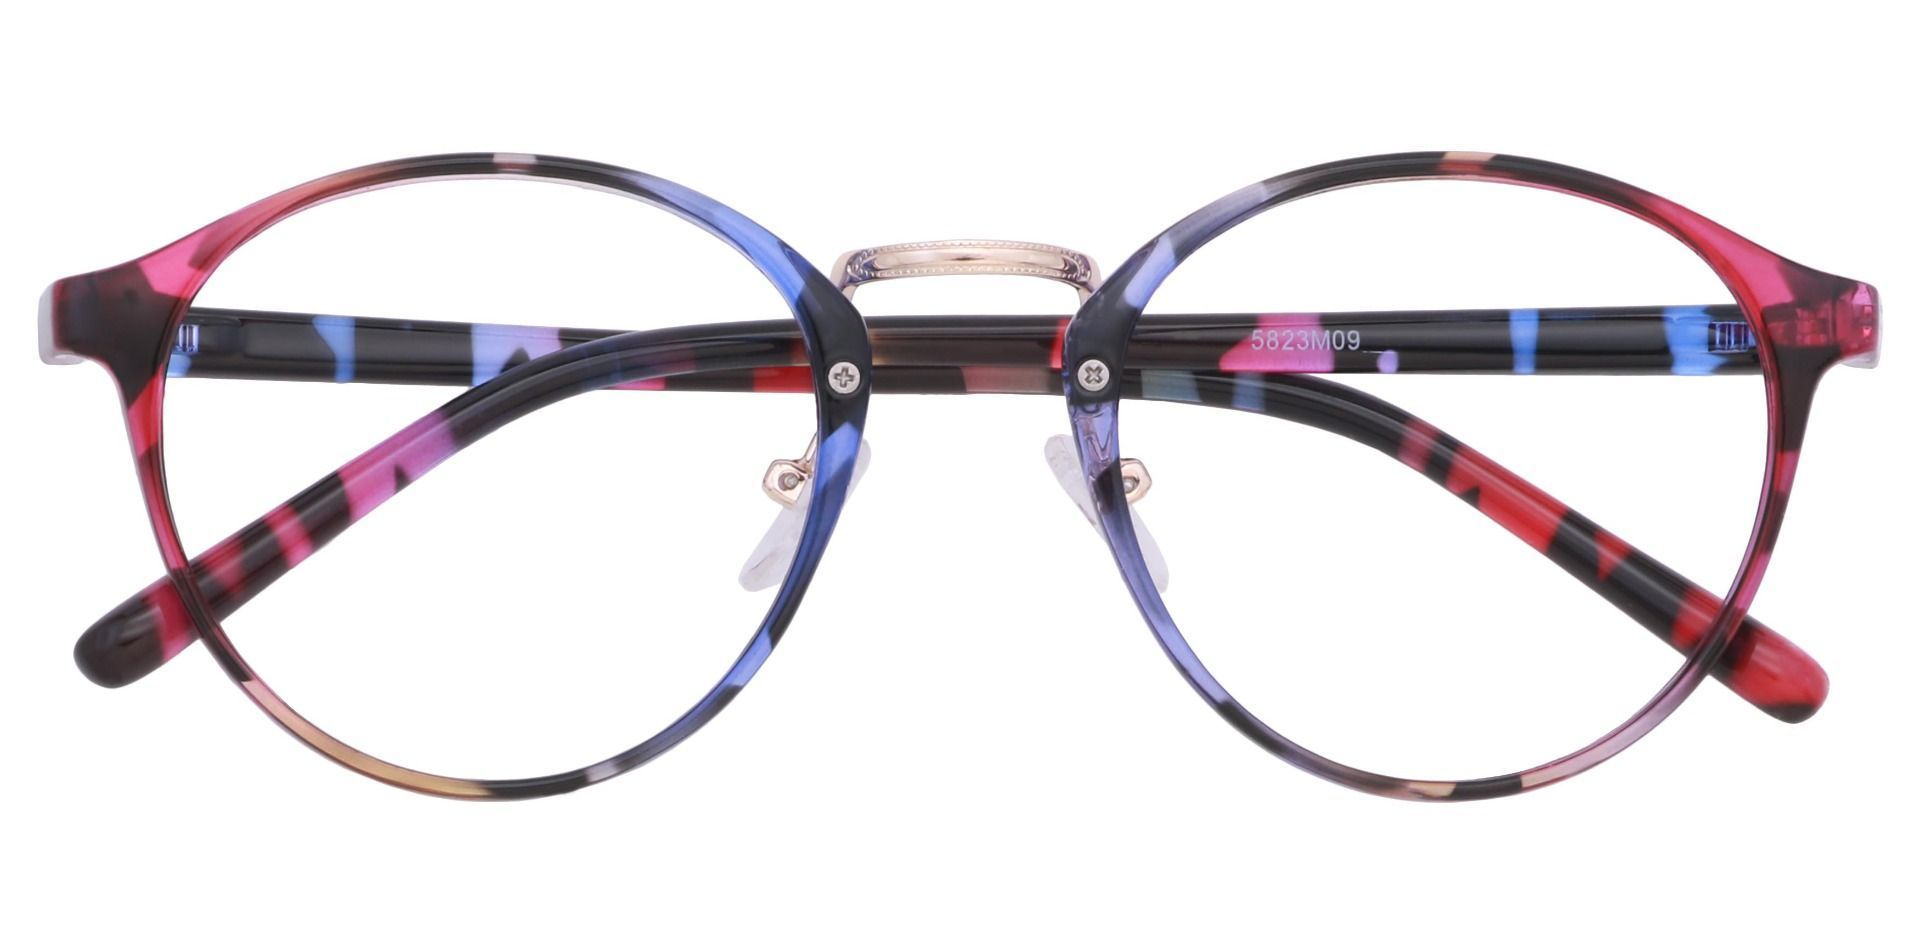 Bloom Oval Prescription Glasses - Two